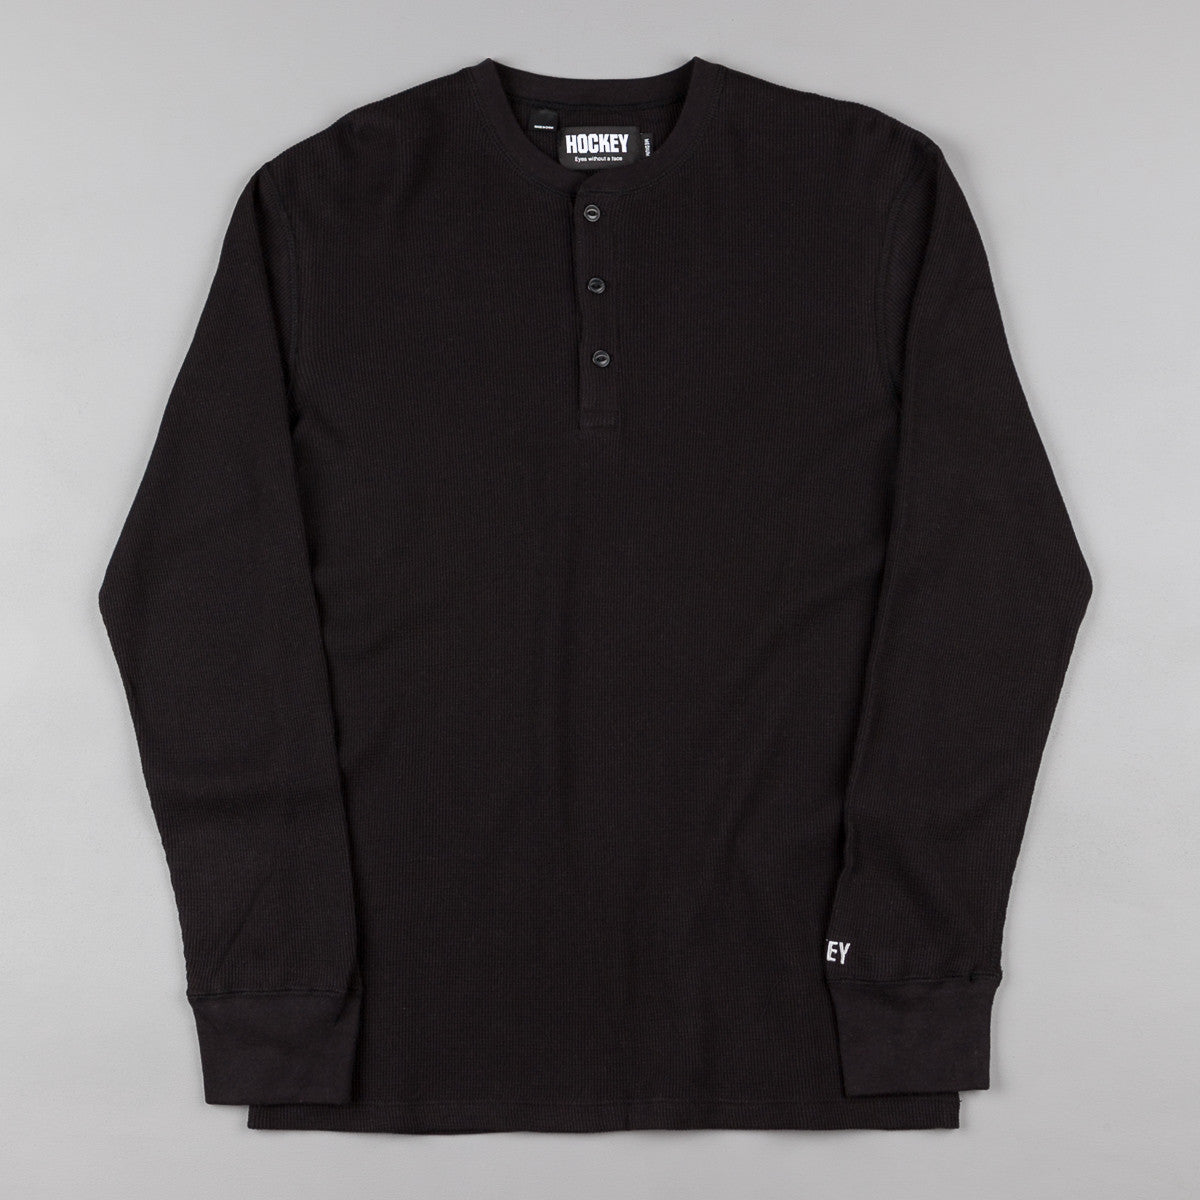 Hockey Waffle Henley Long Sleeve T-Shirt - Black